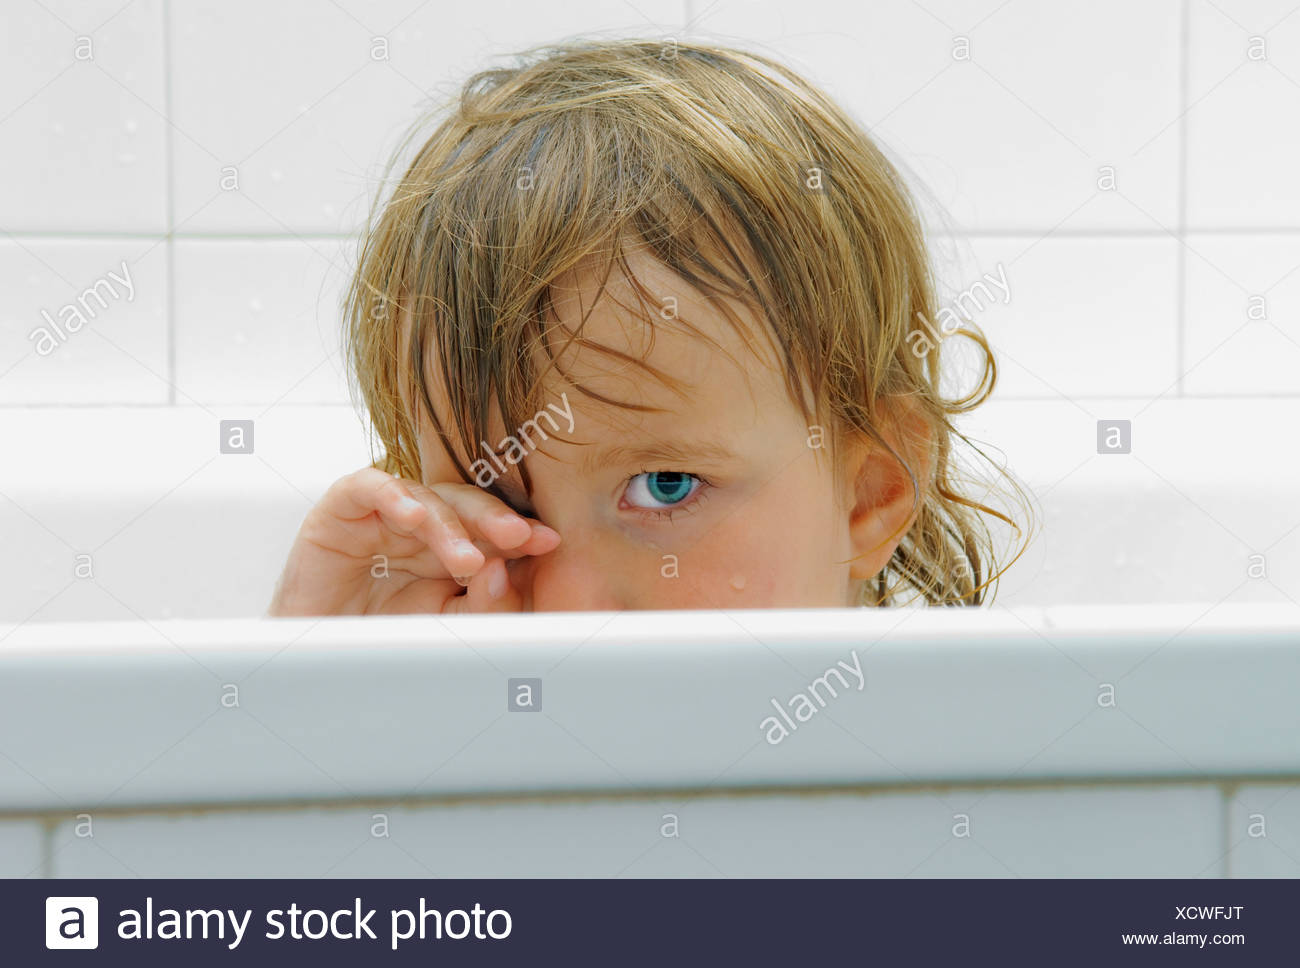 Child In Bath Tub Stock Photo: 283302848 - Alamy